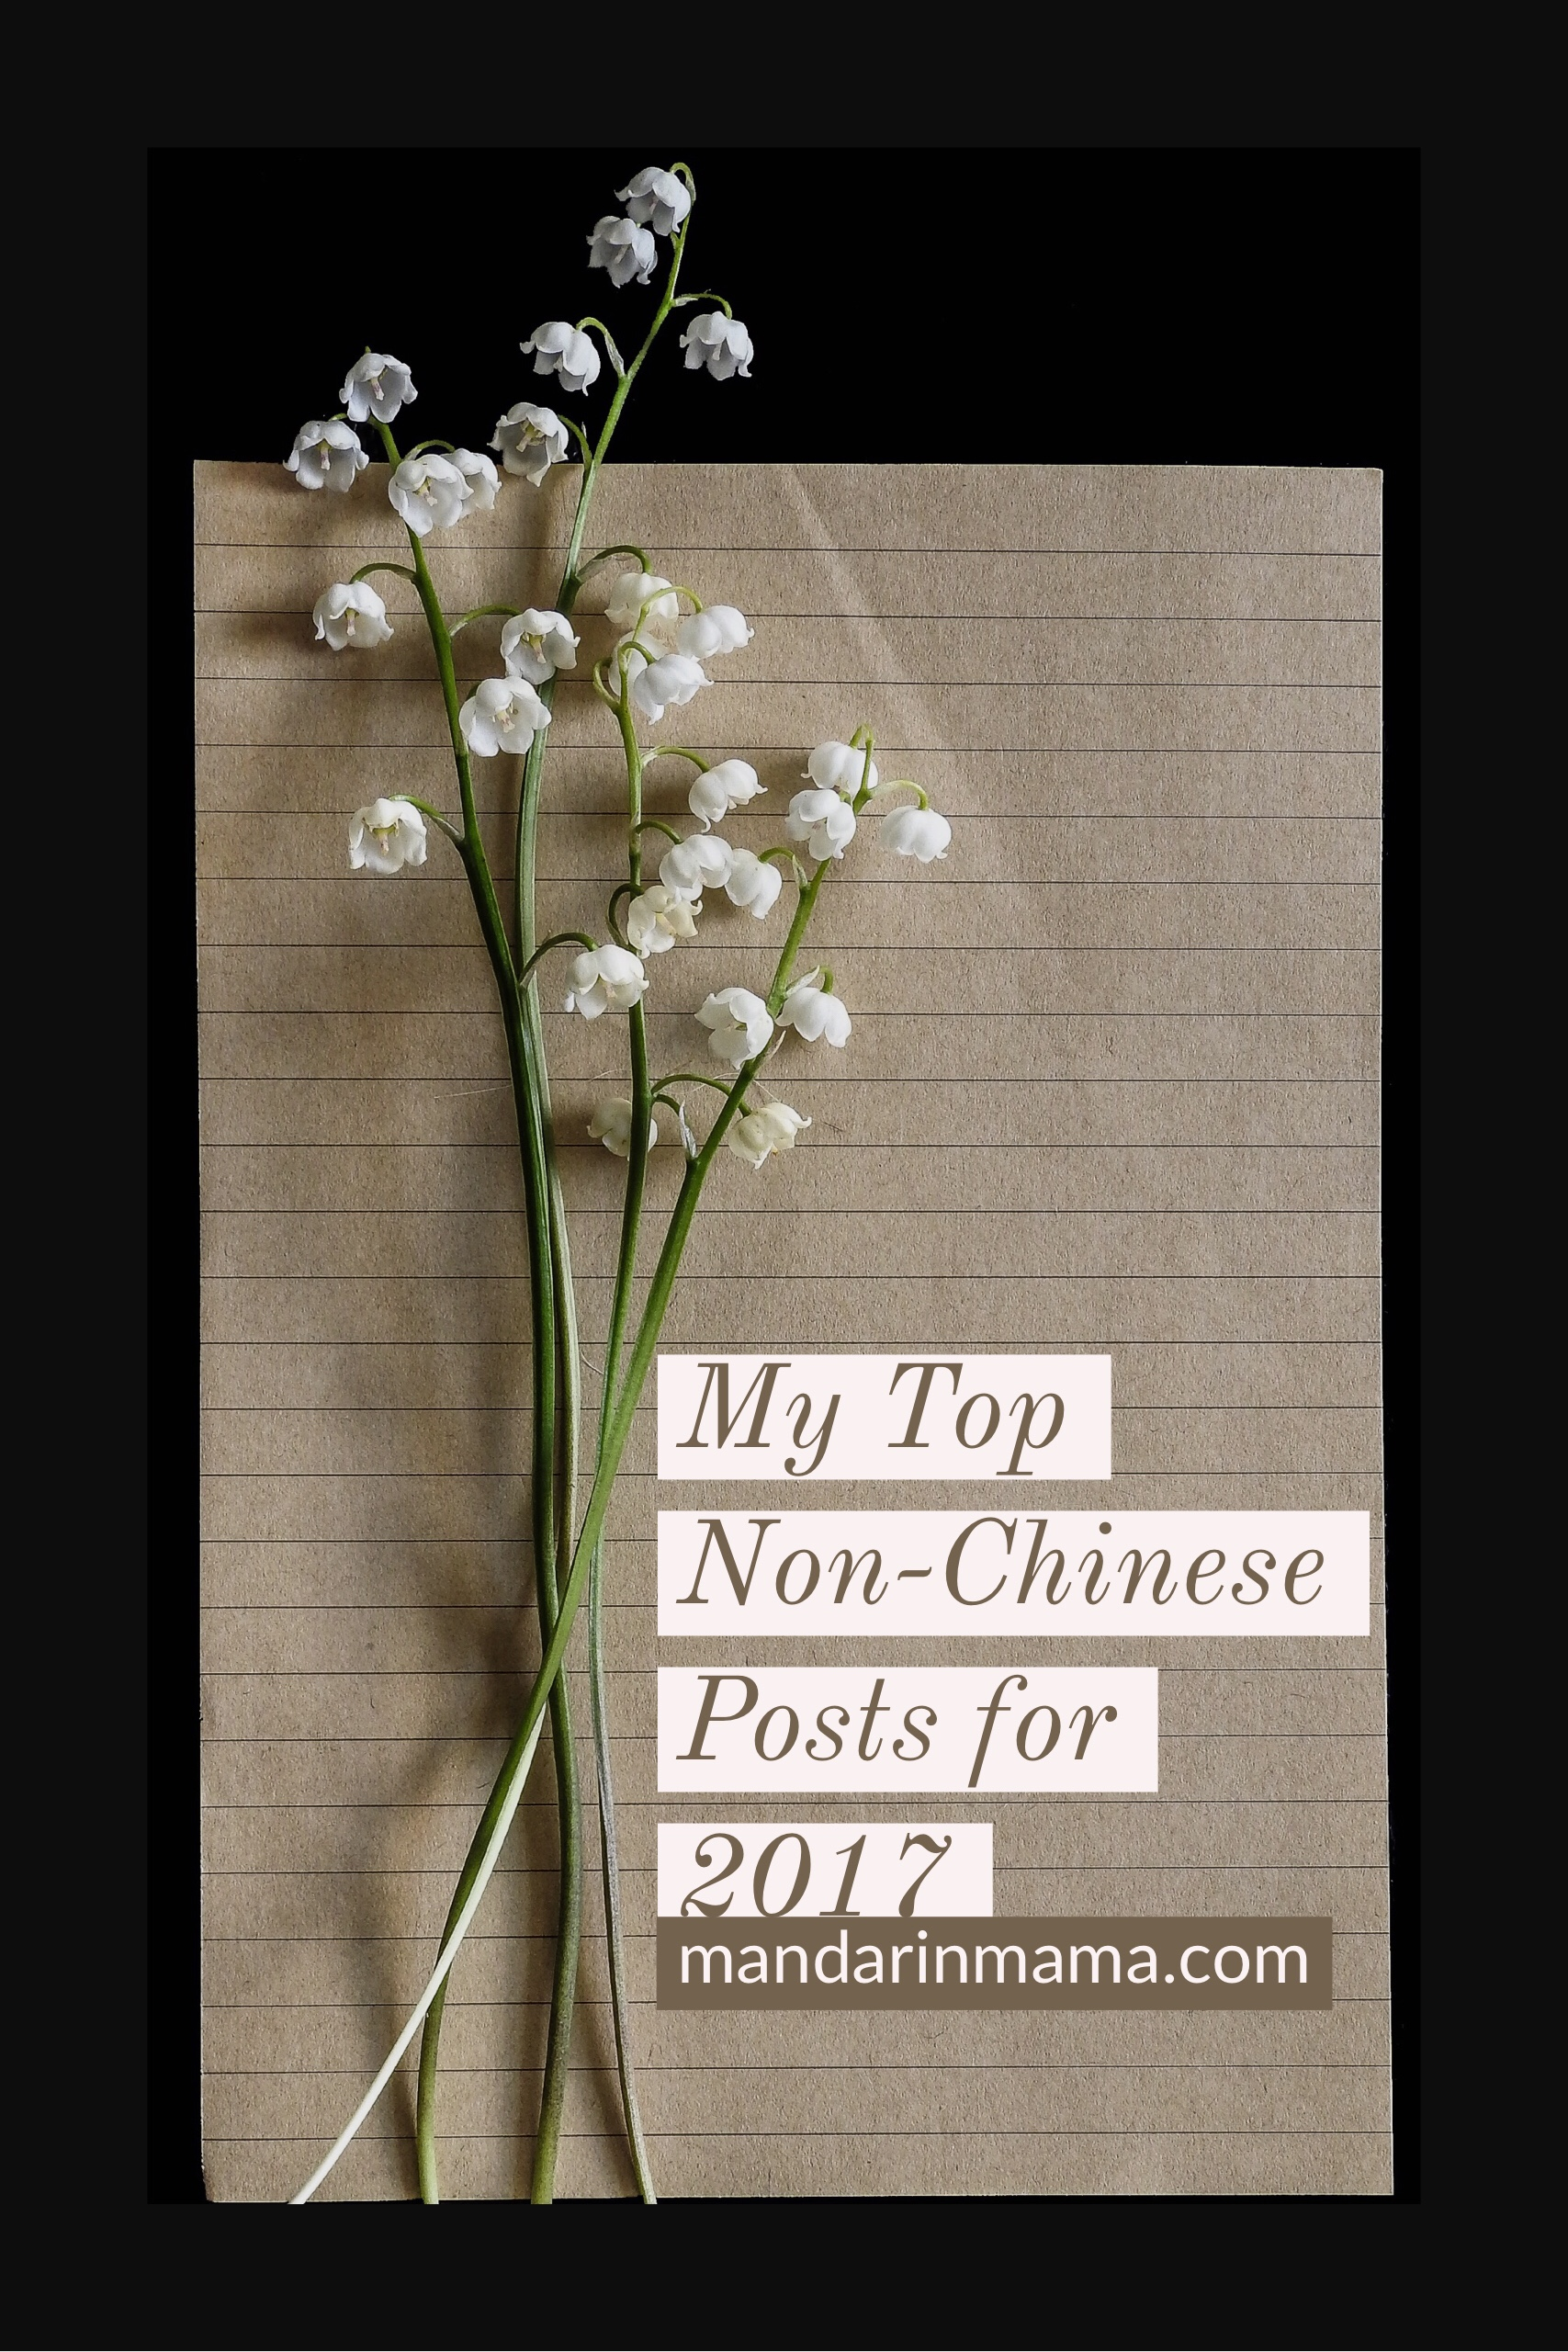 My Top Non-Chinese Posts for 2017